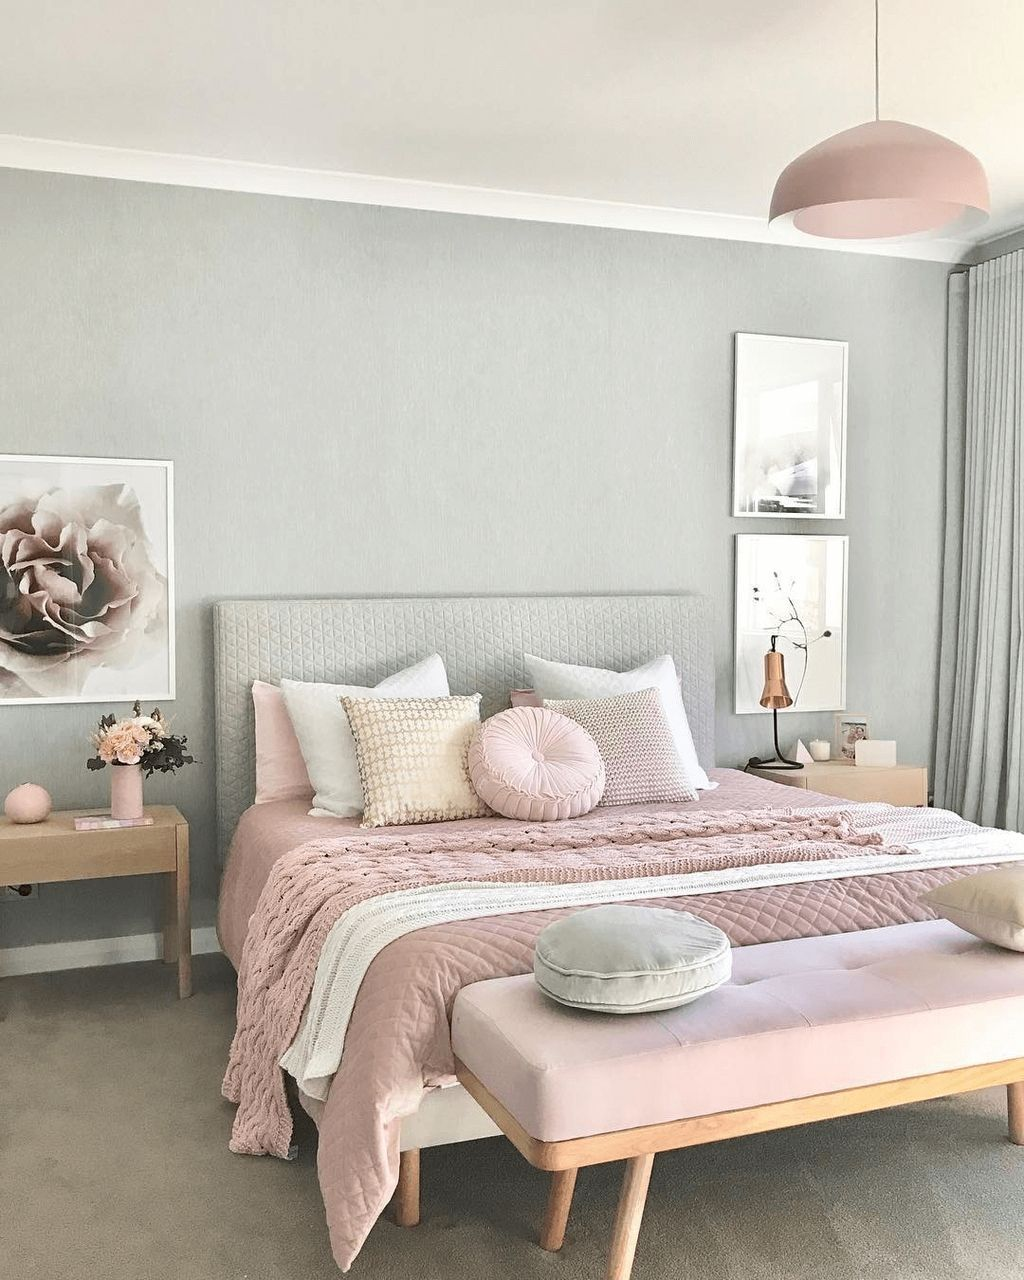 11 Beautiful Spring Decor Ideas With Pastel Color - HOMYHOMEE - 11